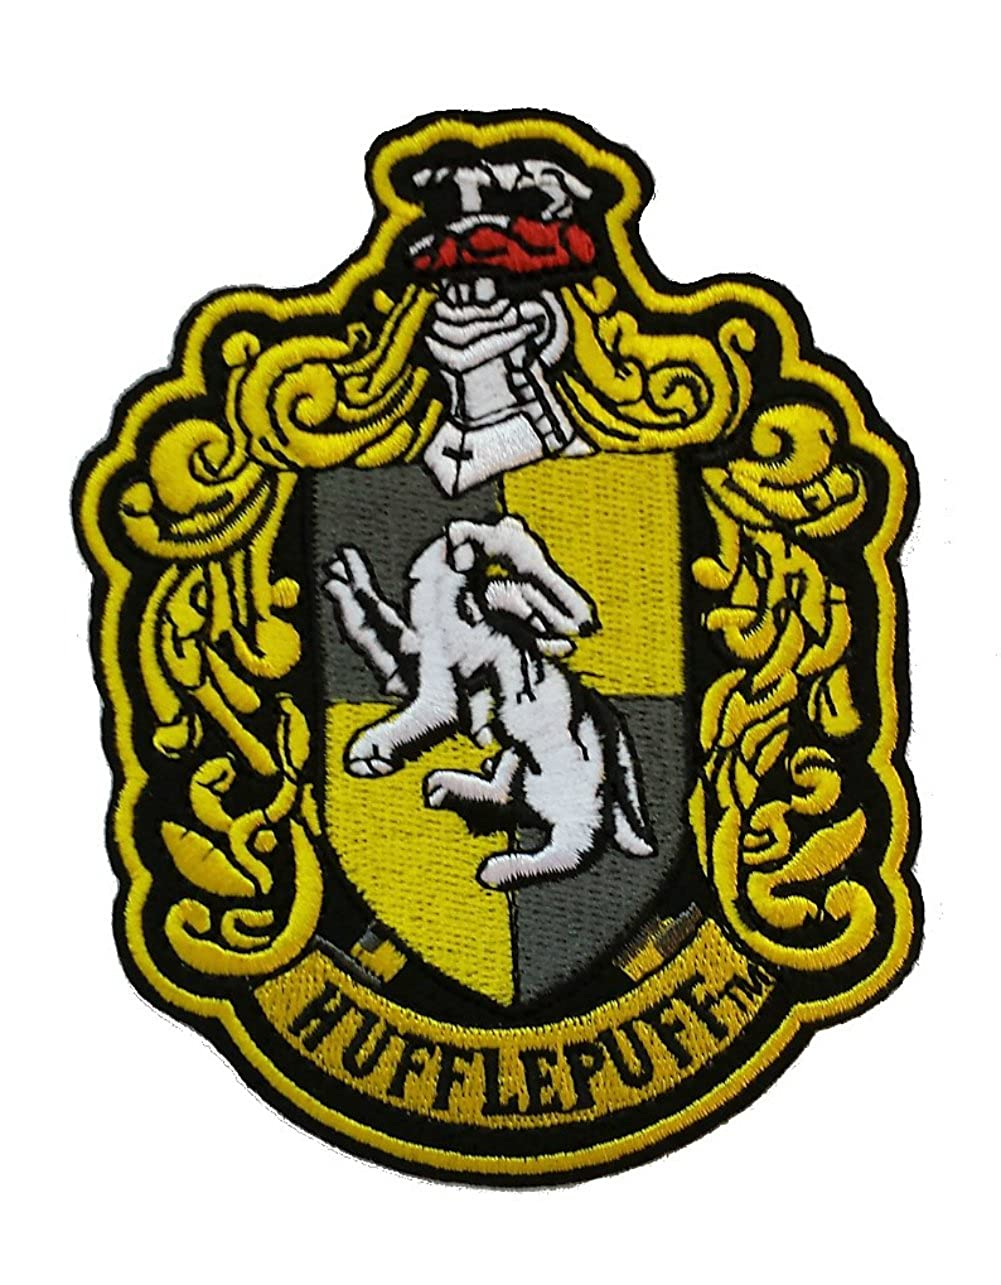 Outlander Gear Harry Potter Hufflepuff House Crest 4.5' Embroidered Iron/Sew-on Patch